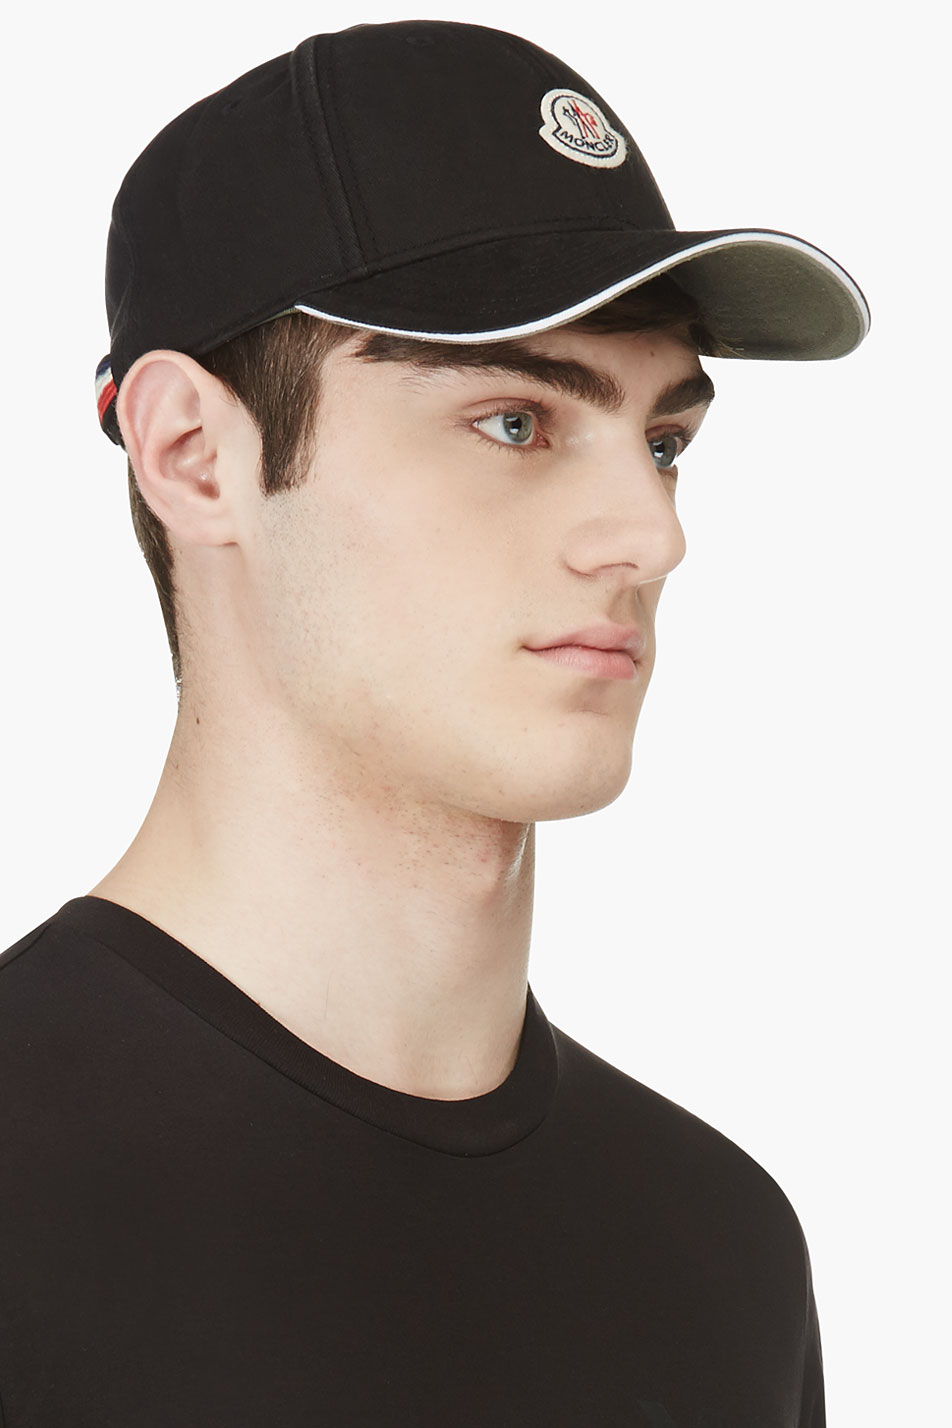 Lyst - Moncler Black Logo Baseball Cap in Black for Men aed26c6999b5